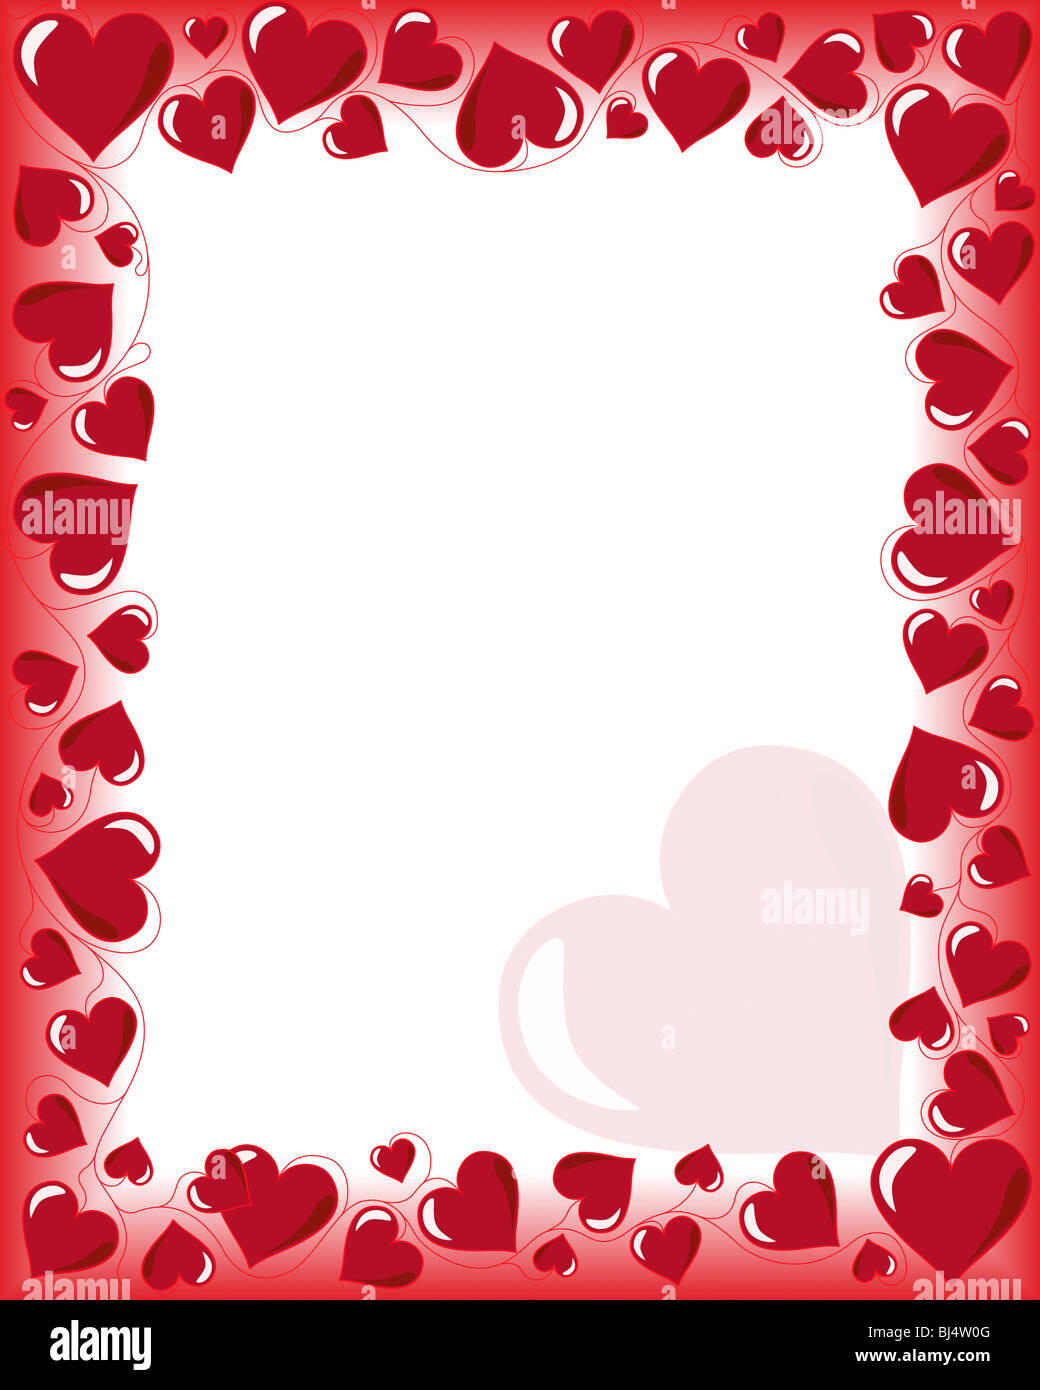 Valentines Day Background Frame With Heart Shaped Ornament Vector